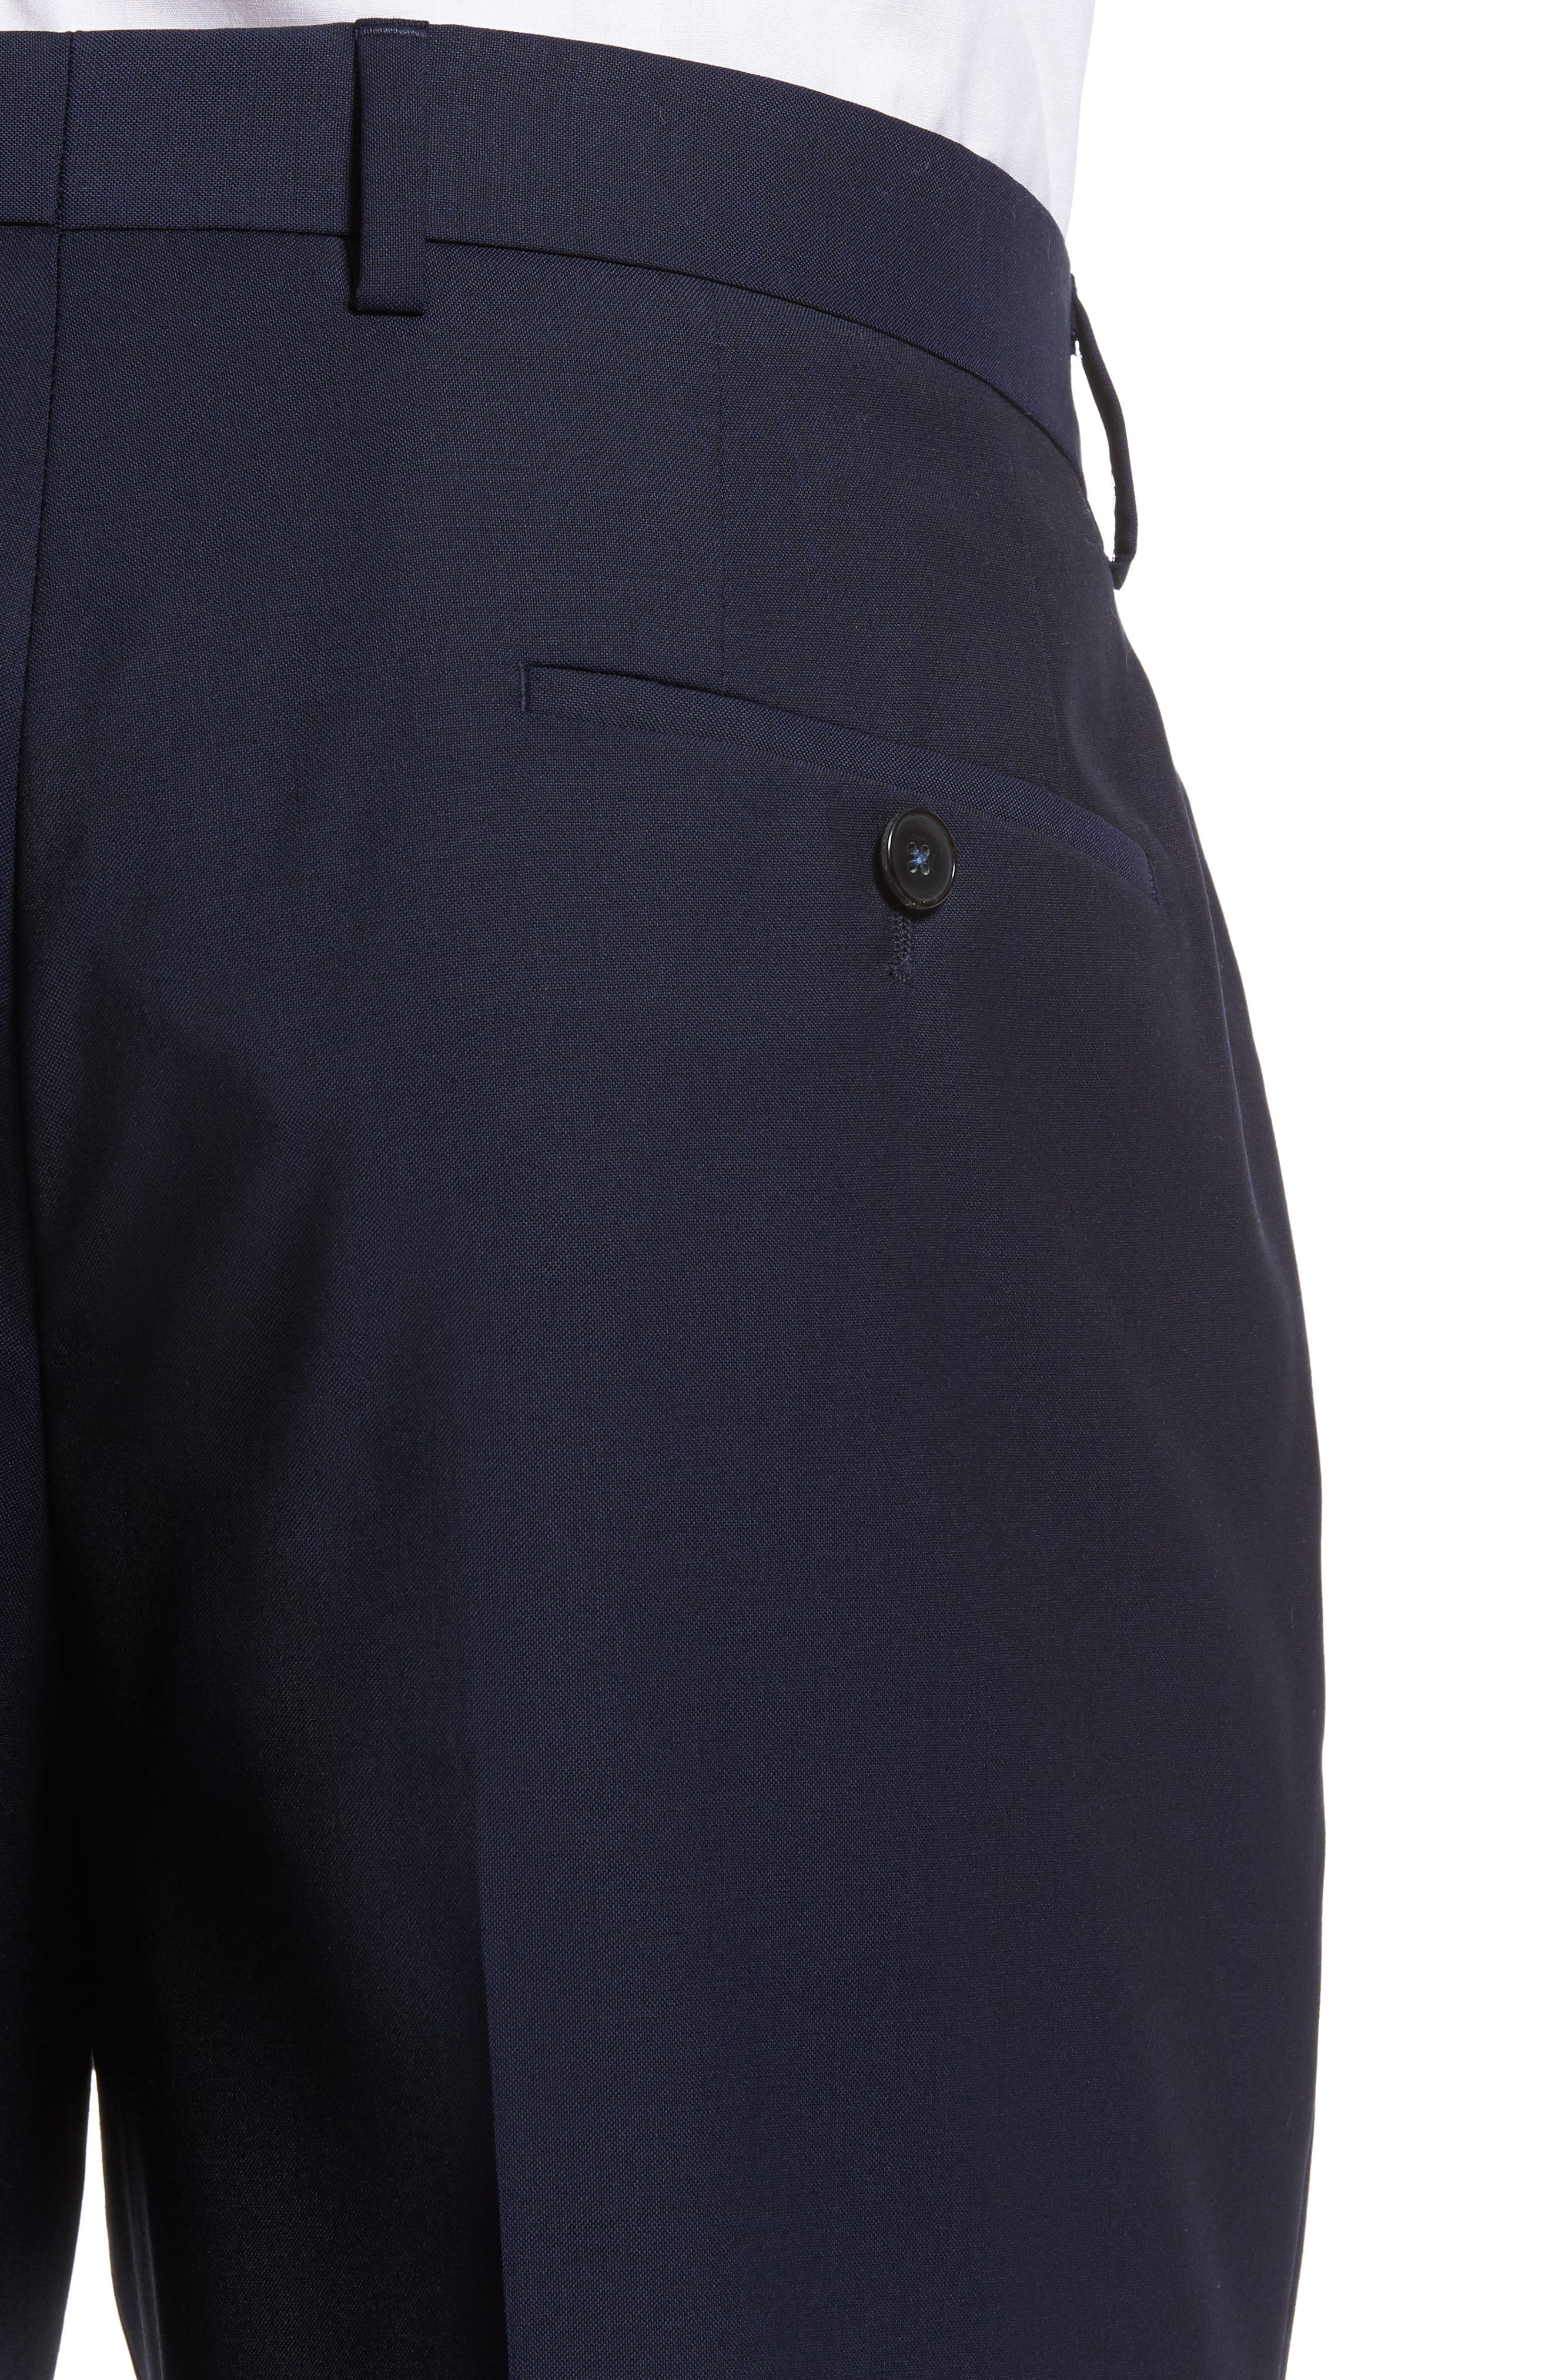 Genesis Flat Front Trim Fit Solid Wool Trousers,                             Alternate thumbnail 5, color,                             NAVY